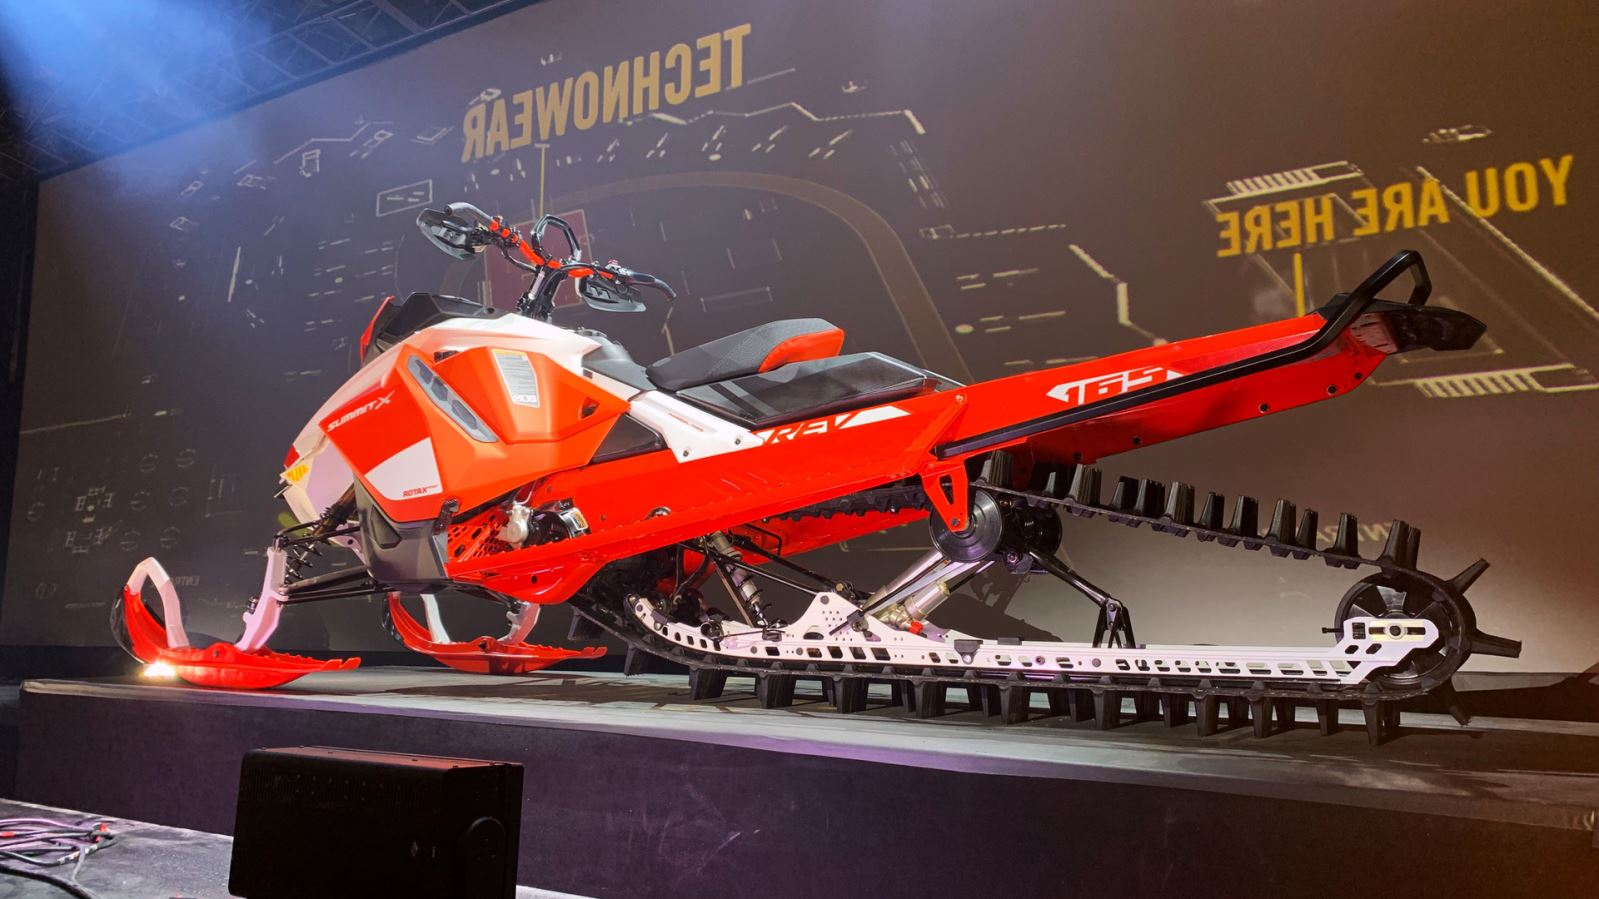 2020 Ski Doo Summit Expert Explained By Its Designers